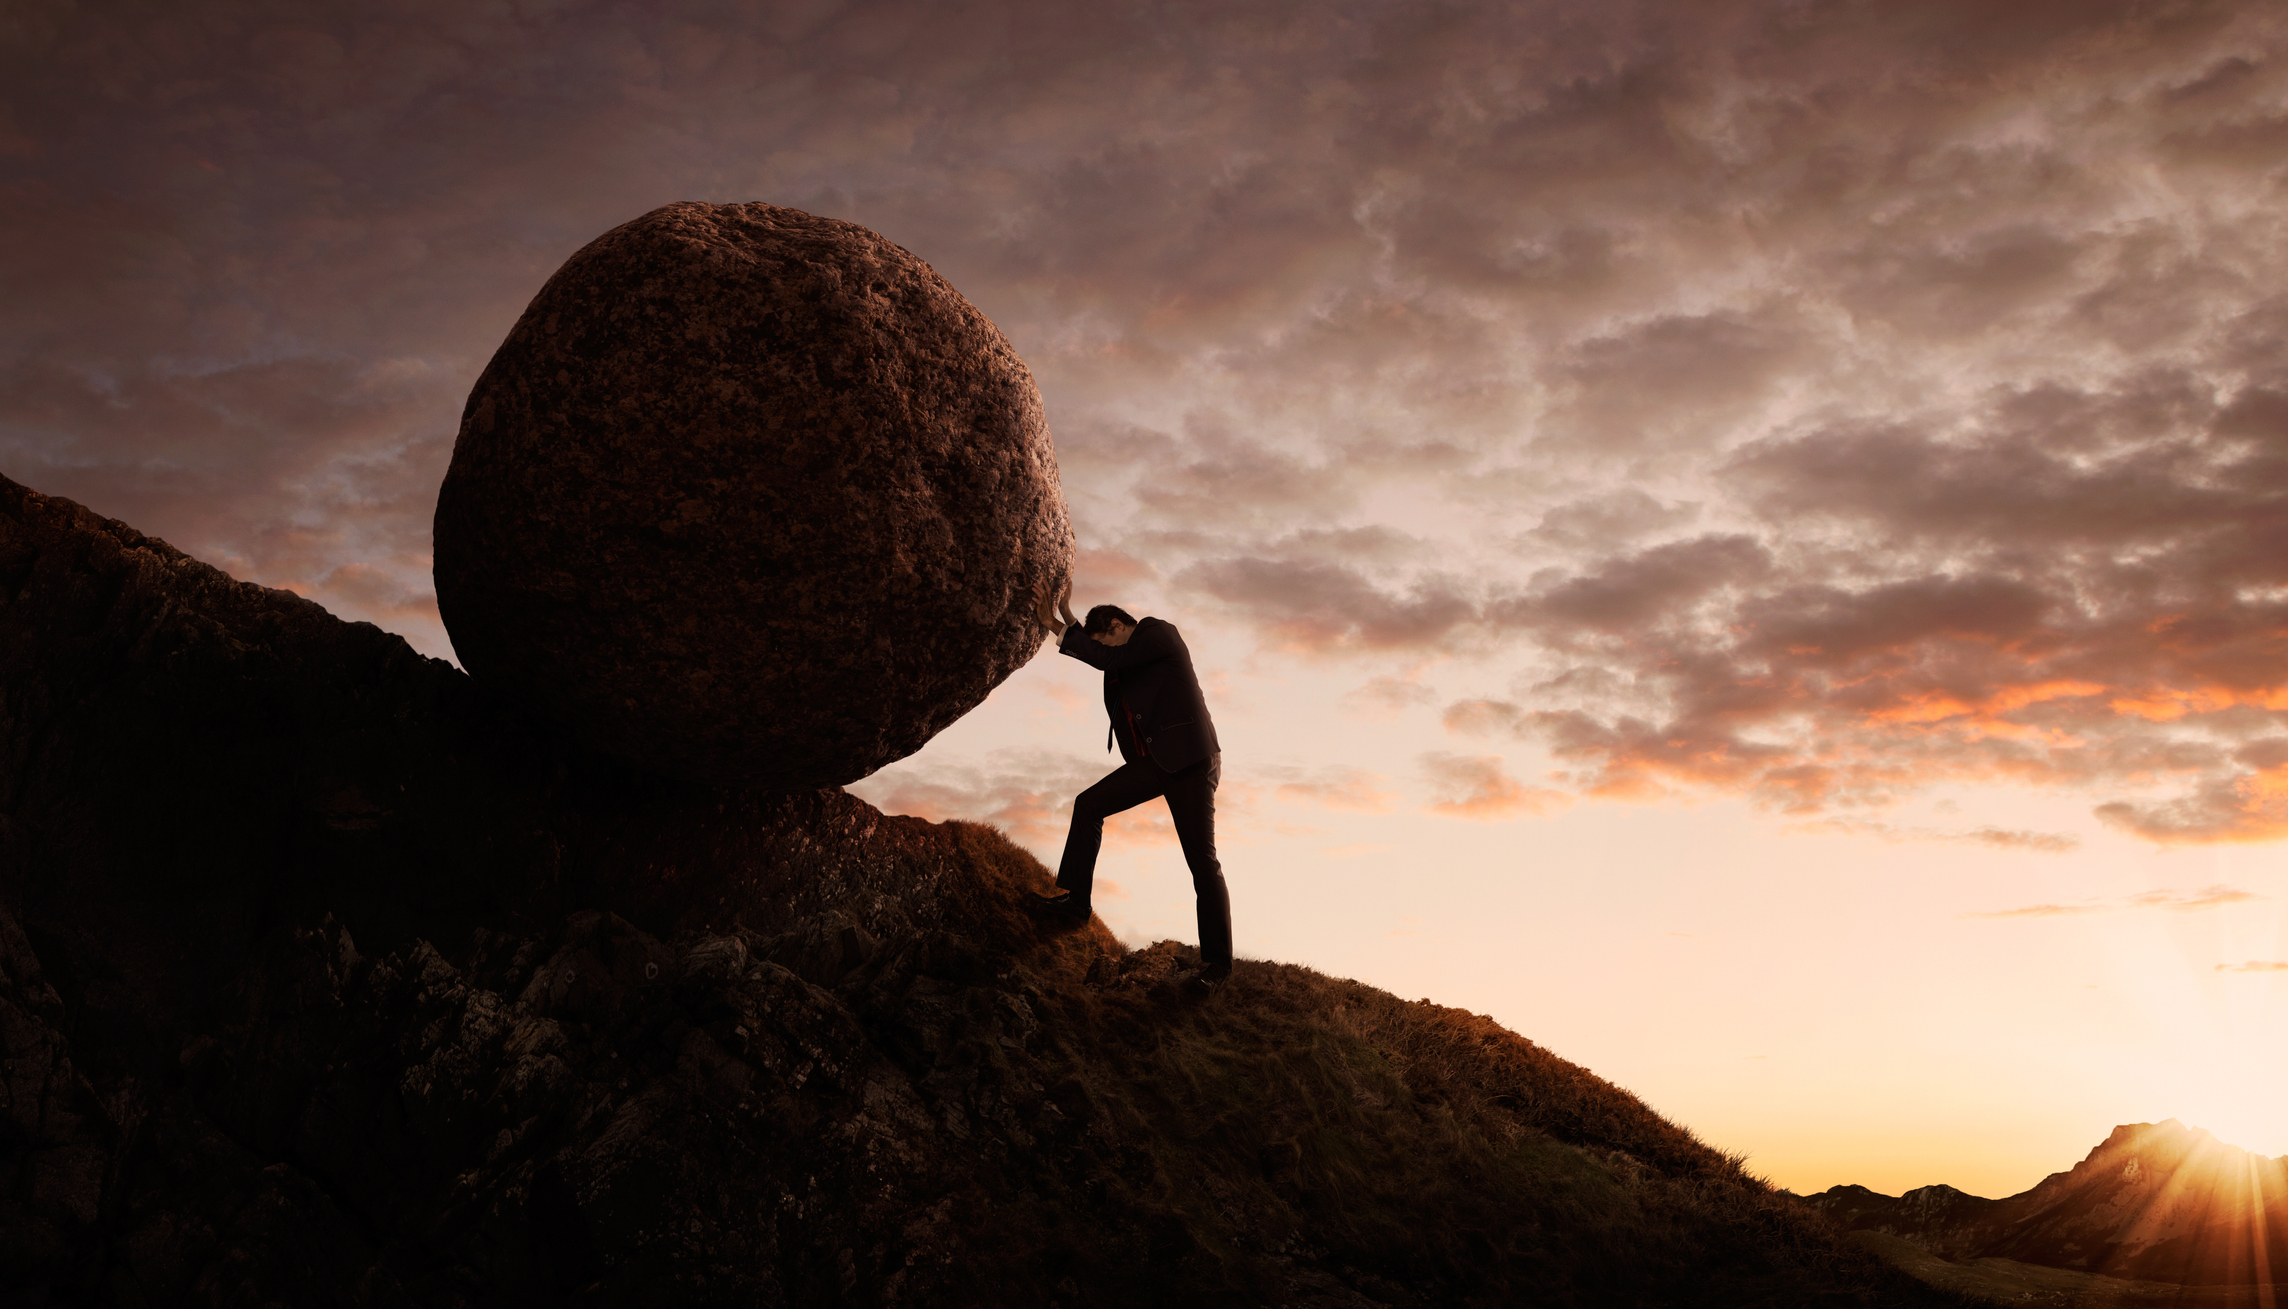 Man in suit rolling boulder uphill against wild sunset backdrop.